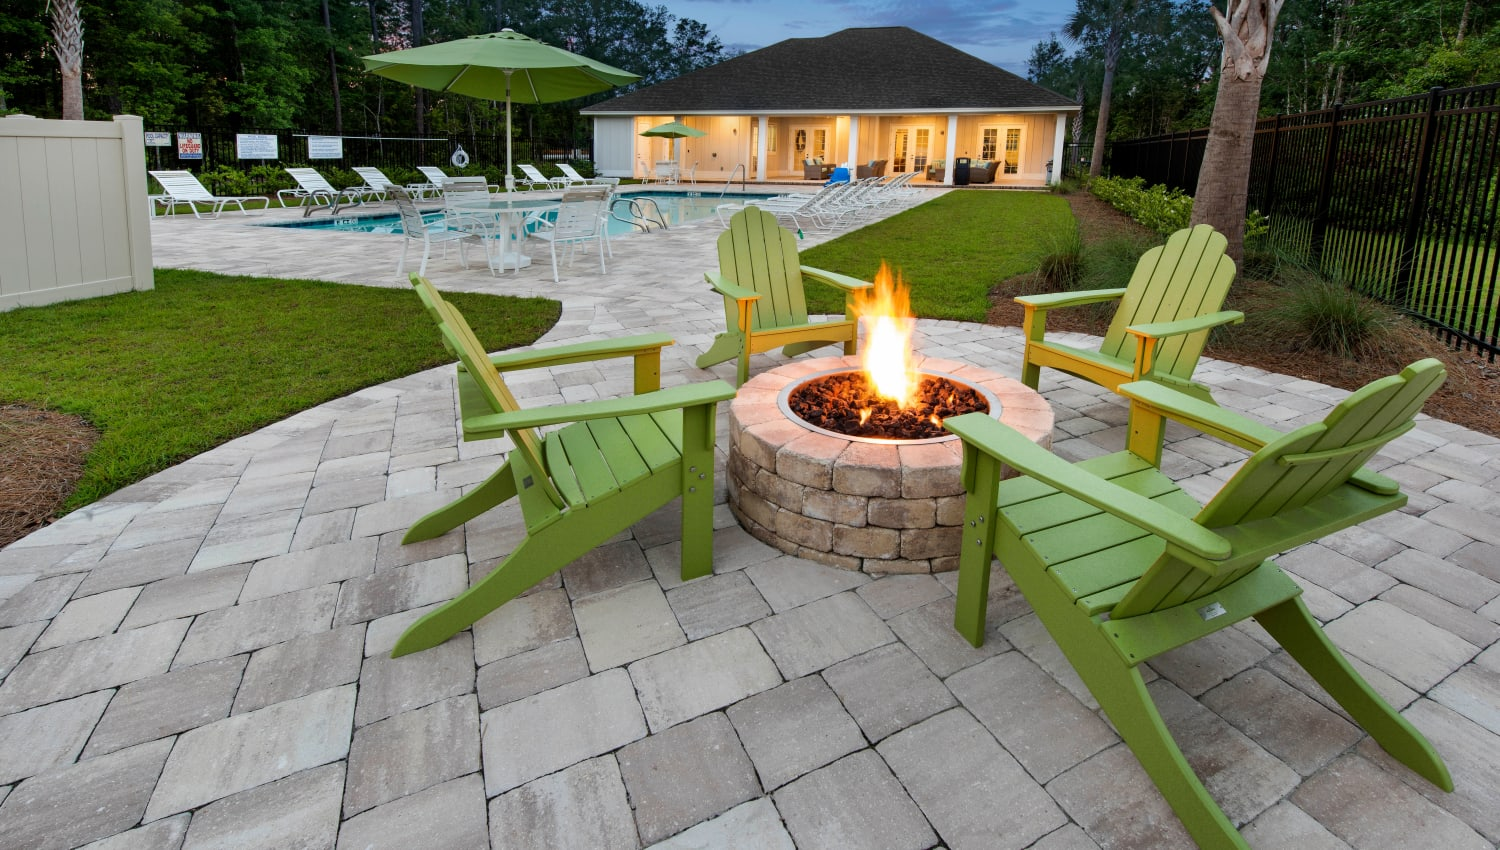 Adirondack chairs around the fire pit at dusk at The Enclave in Brunswick, Georgia